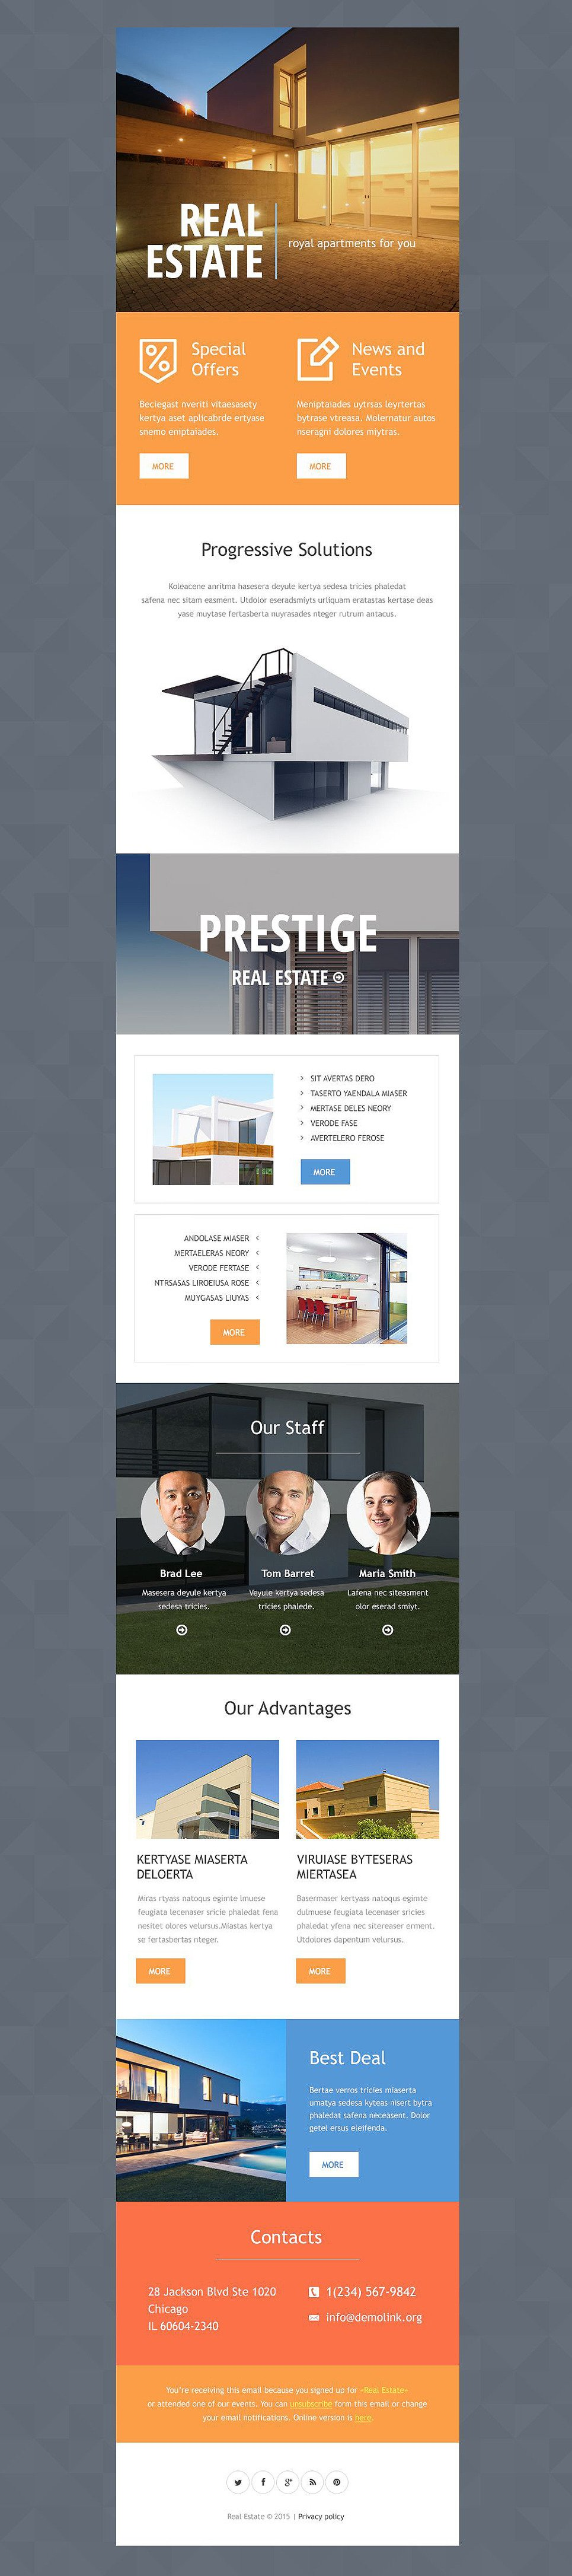 Superior Real Estate Agency Responsive Newsletter Template New Screenshots BIG